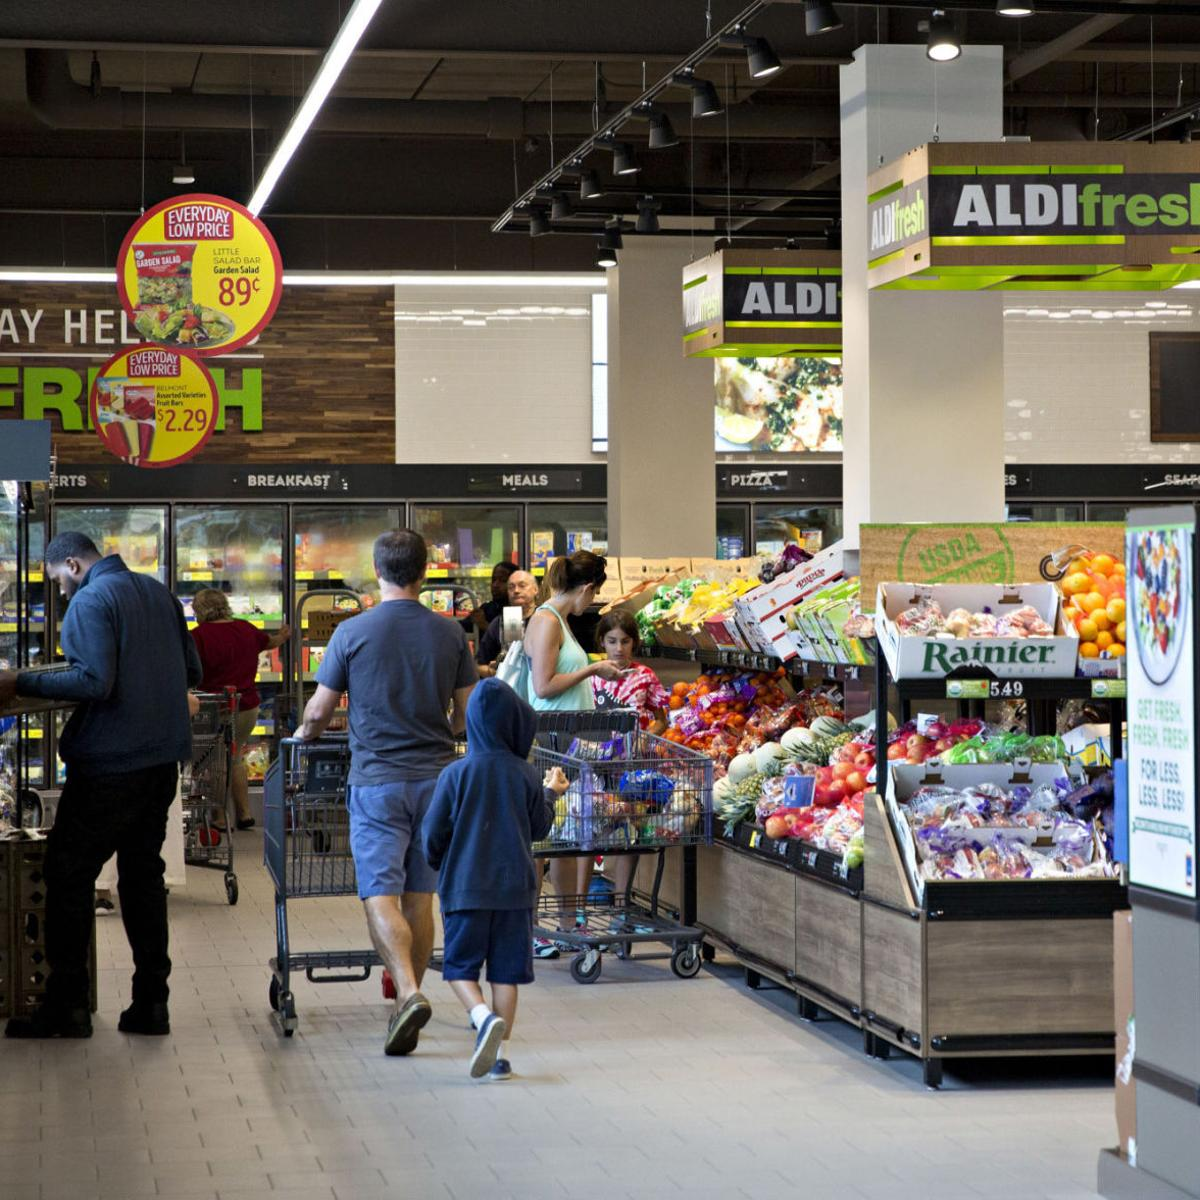 Aldi sets sustainability goals with consumers calling for